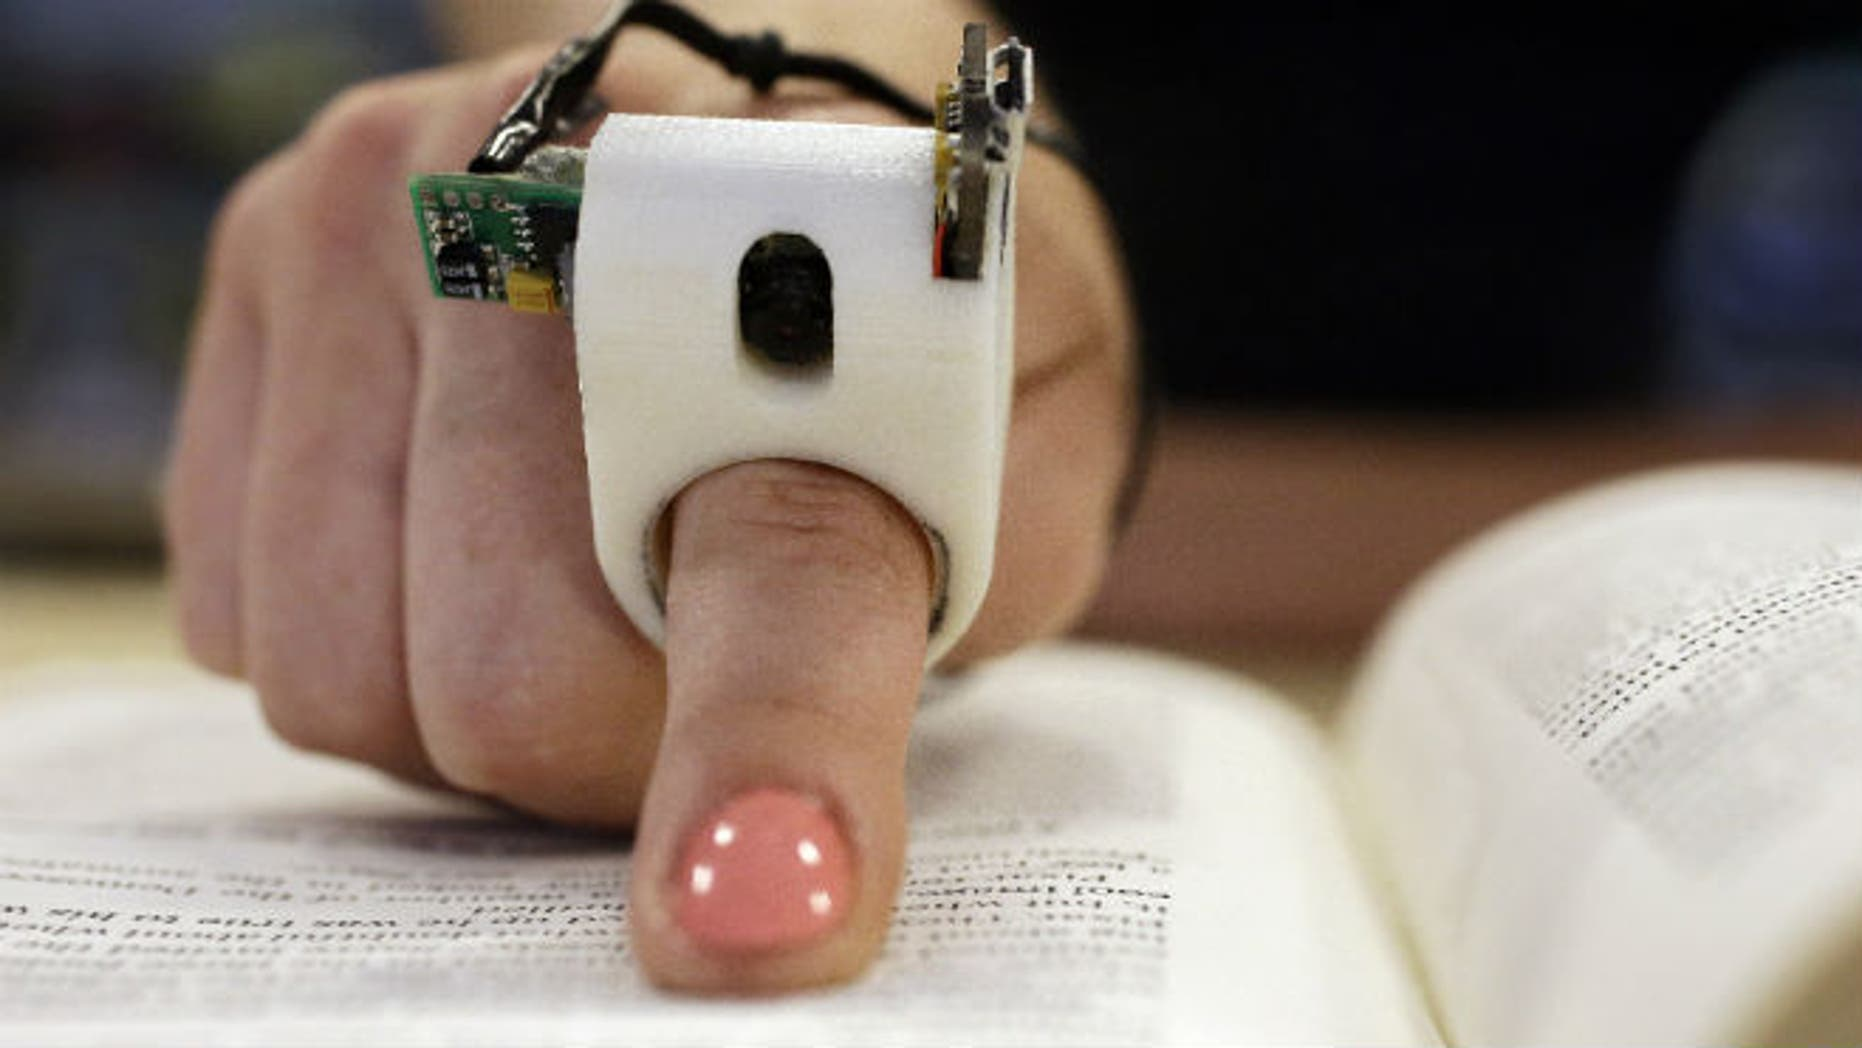 A model wears a FingerReader ring at the Massachusetts Institute of Technology's Media Lab in Cambridge, Mass. (AP Photo Stephan Savoia)